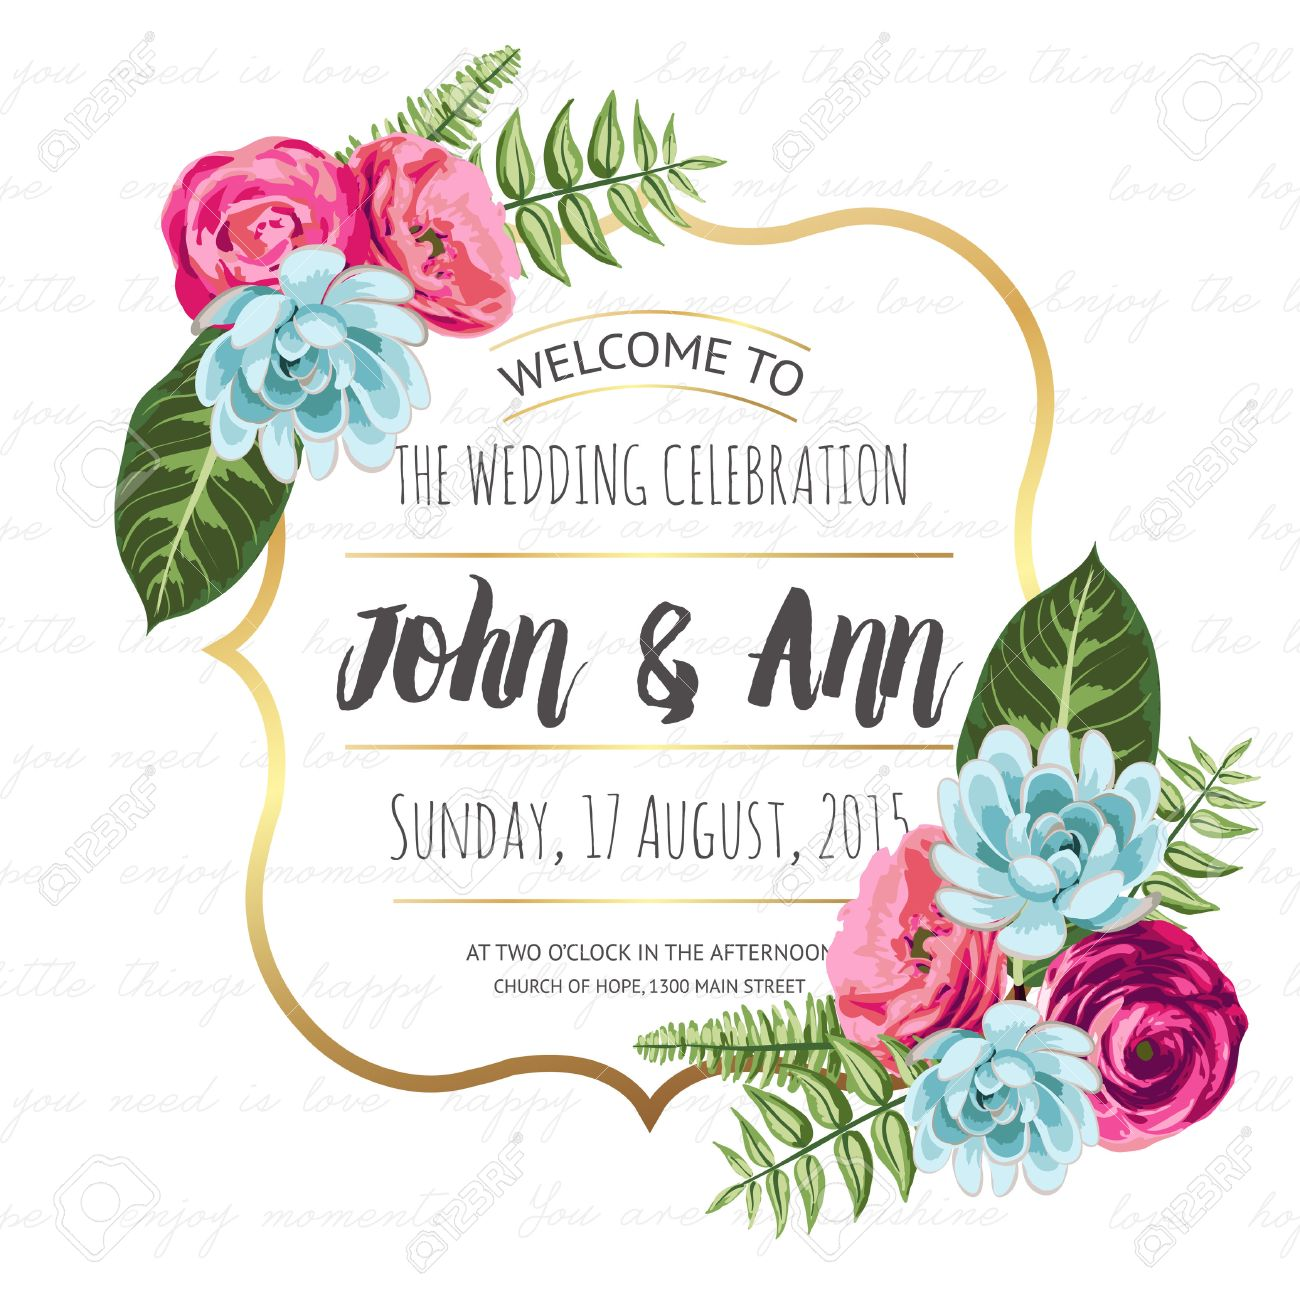 Wedding invitation card with painted flowers royalty free cliparts wedding invitation card with painted flowers stock vector 35994484 stopboris Choice Image